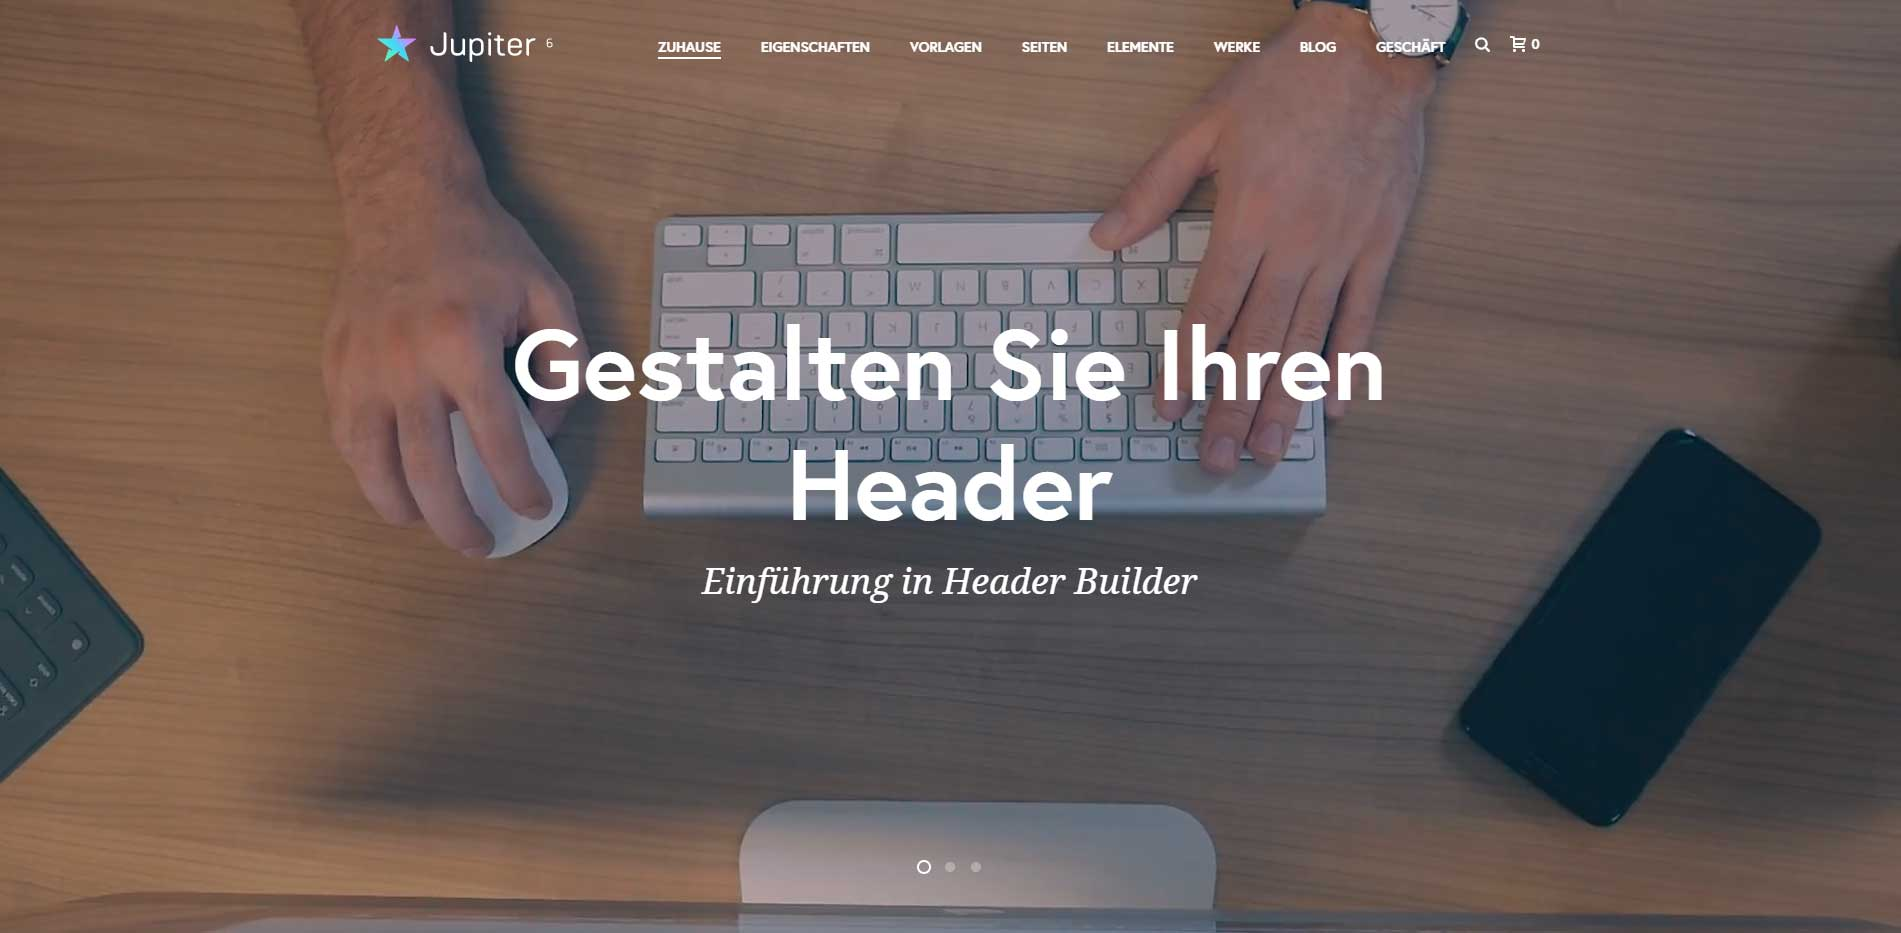 wp-theme jupiterx in deutsch